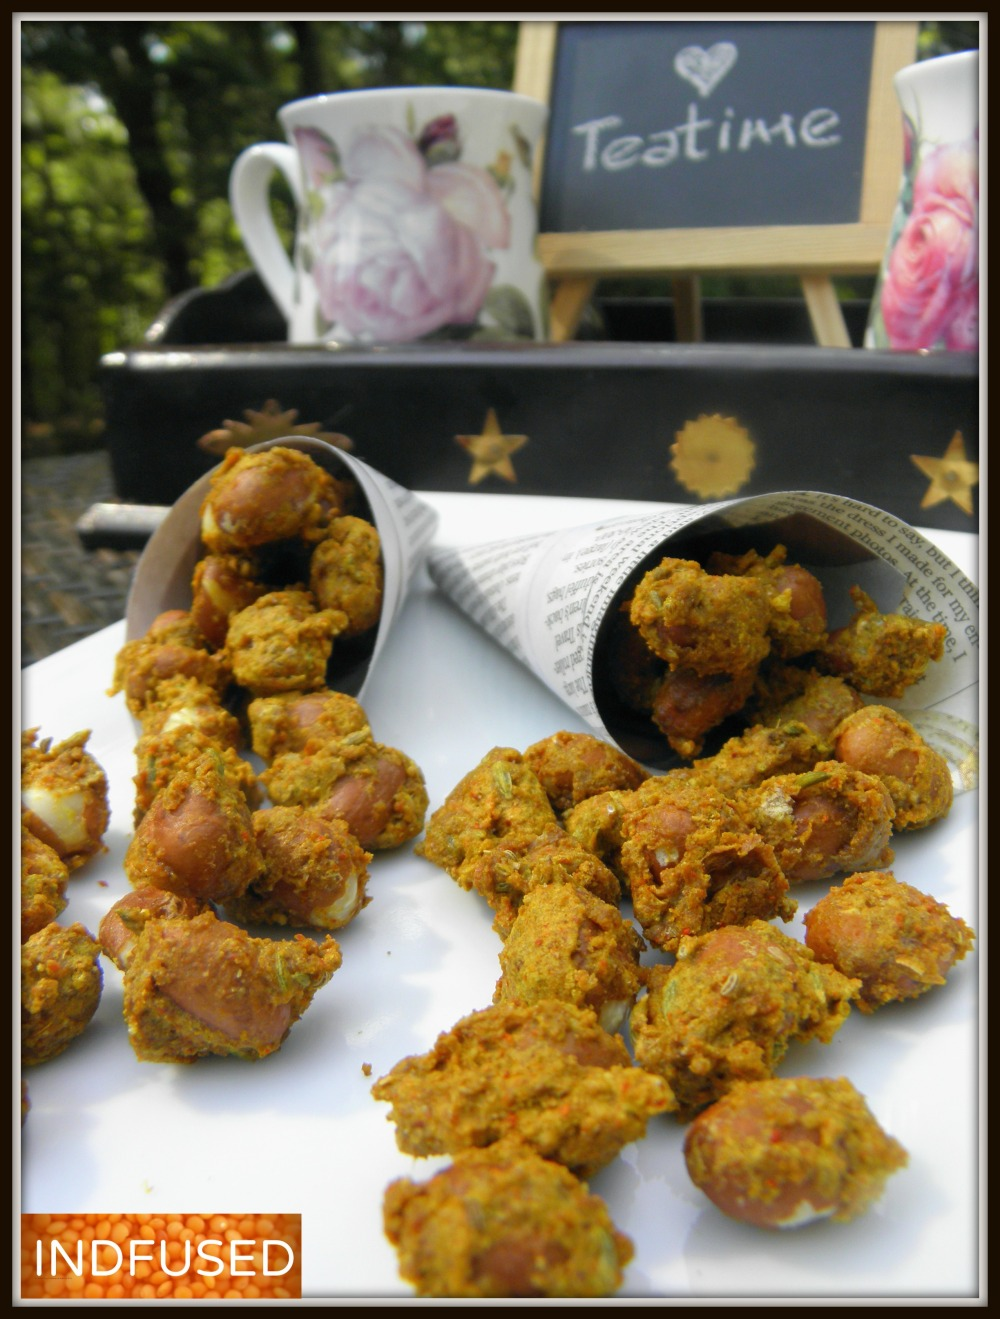 Mouthwatering , favorite snack made quick and easy. Masala Peanut Bhujia is a favored Indian snack, serves 4